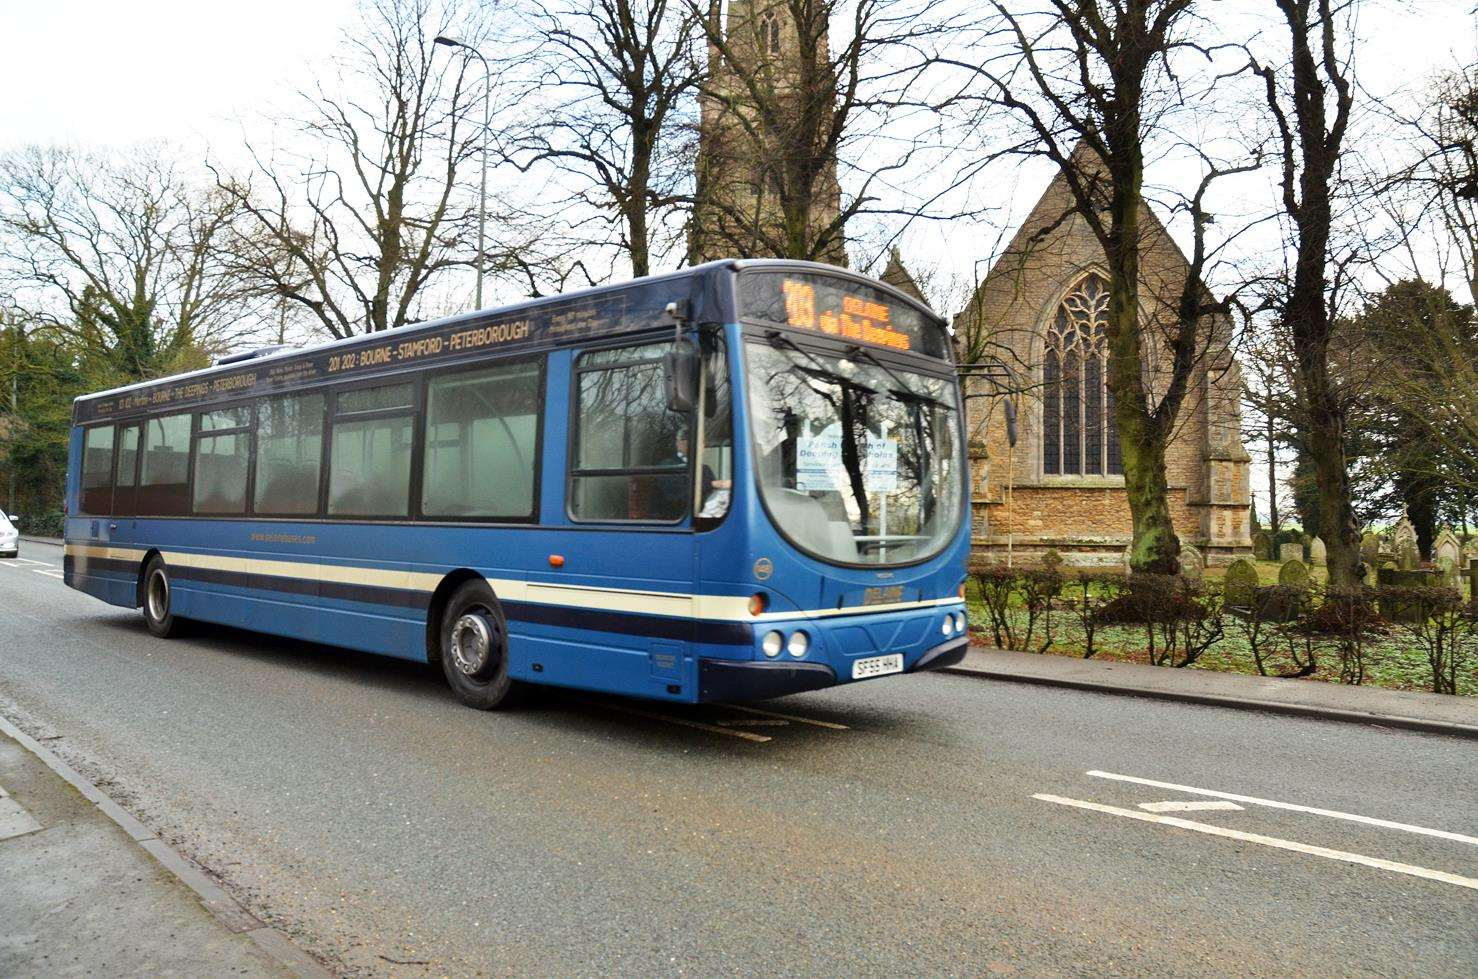 The new 203 Spalding to Stamford bus service passes by Deeping St Nicholas Parish Church. Photo (TIM WILSON): SG-250119-009TW.